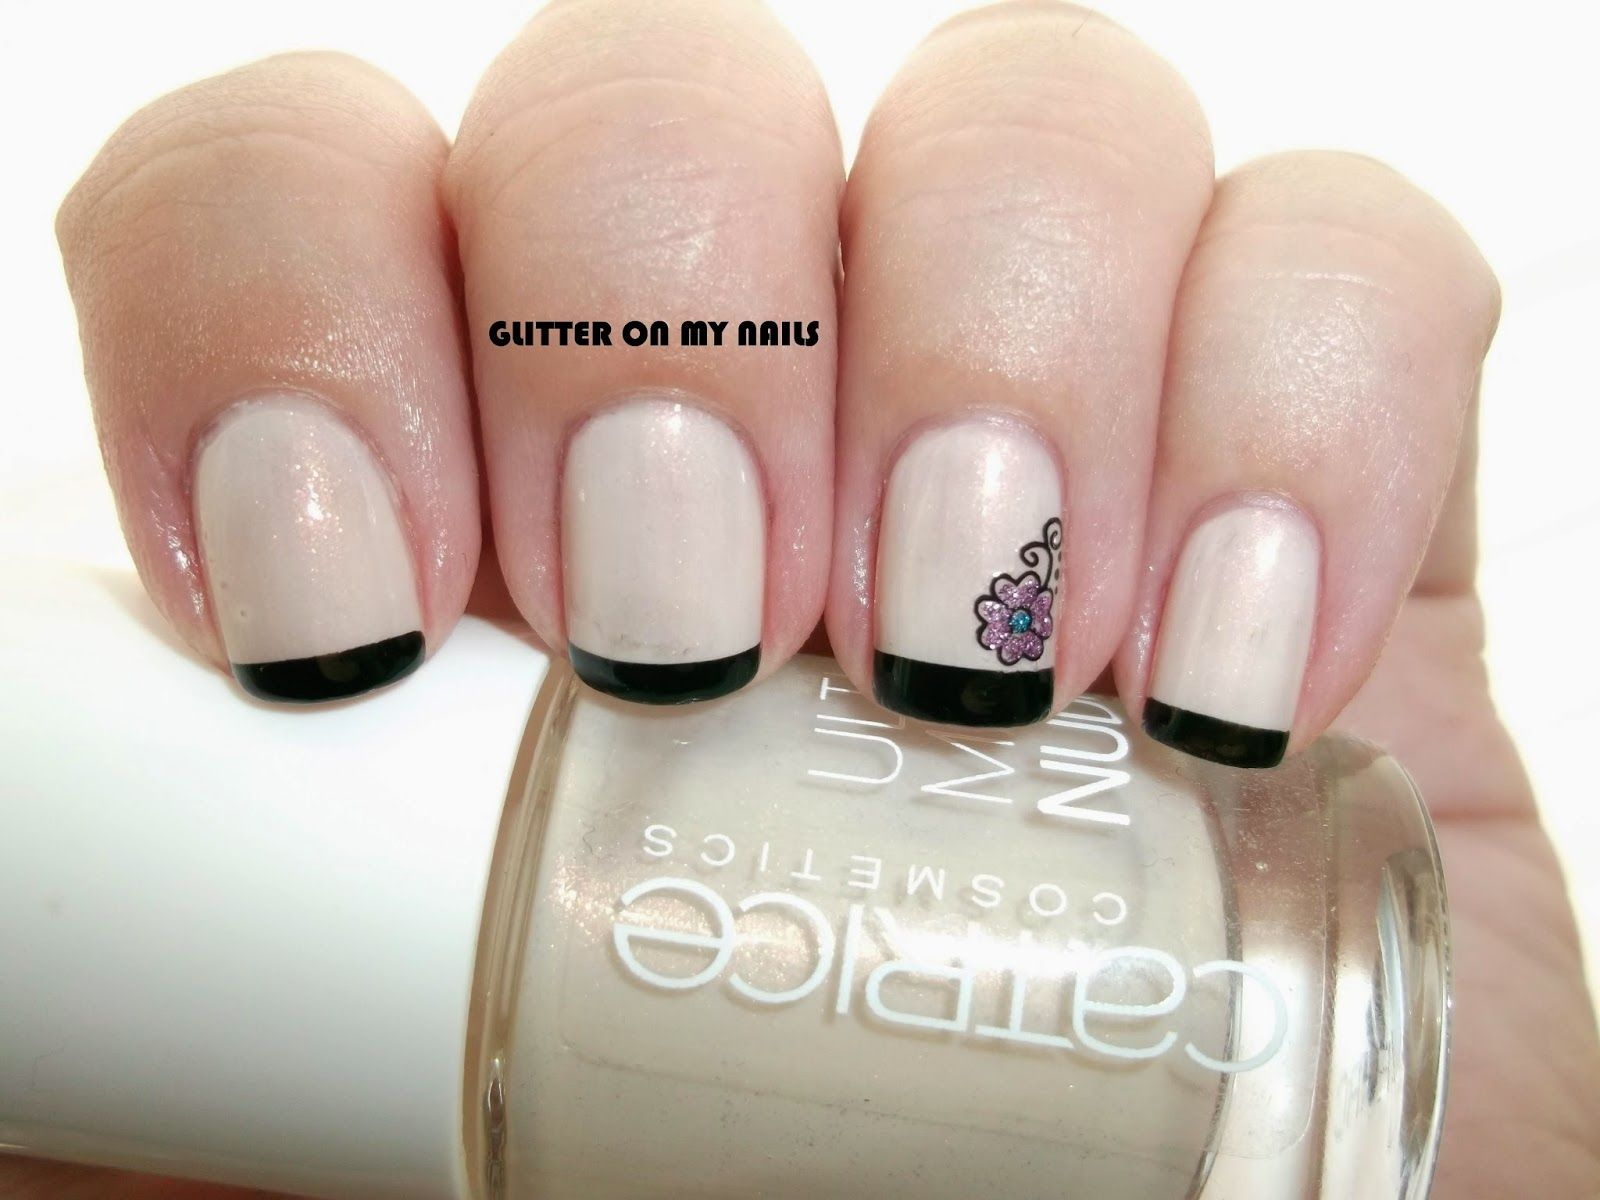 GLITTER ON MY NAILS: BLACK FRENCH